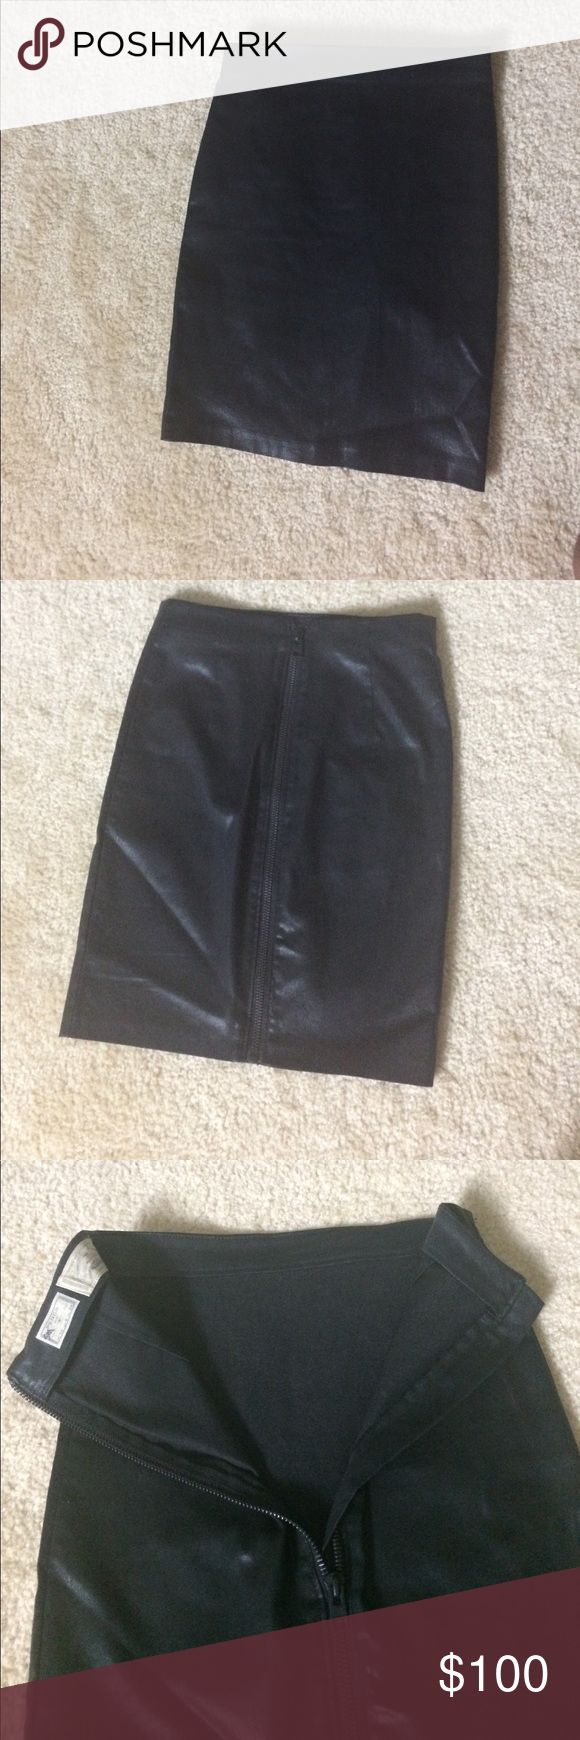 "All Saints pencil skirt AllSaints skirt • pencil style • black with sheen coating • very stretchy • Sz 6 • full back zip closure • zipper perfectly intact • 20"" long • excellent, like-new condition • fast same/next day shipping• BUY IT NOW!!! All Saints Skirts Pencil"